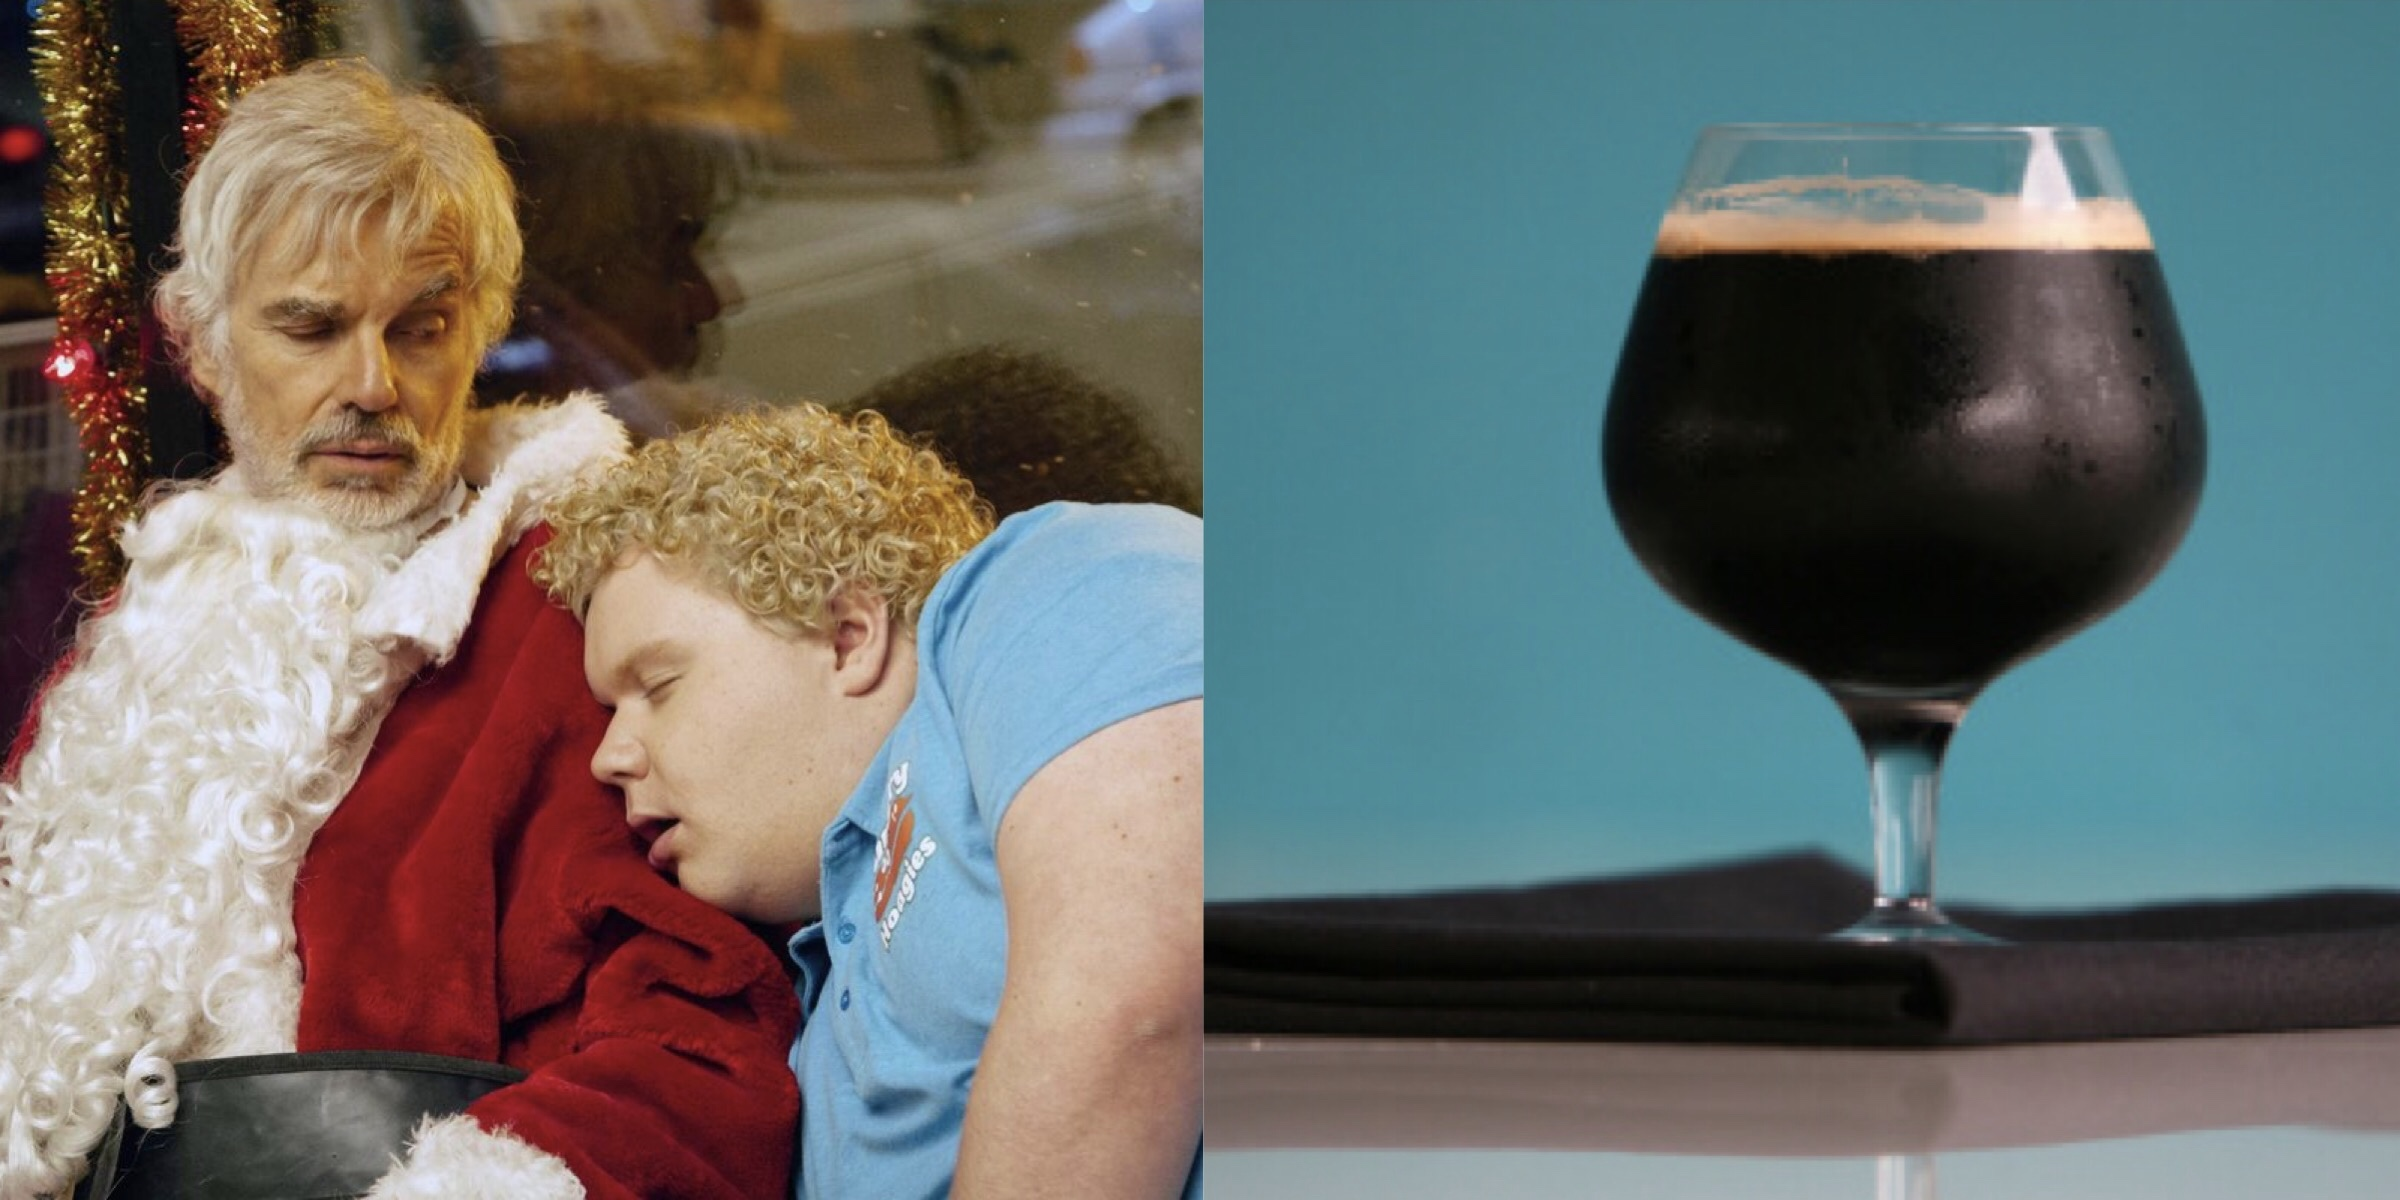 'Bad Santa' and Corsendonk Christmas Ale